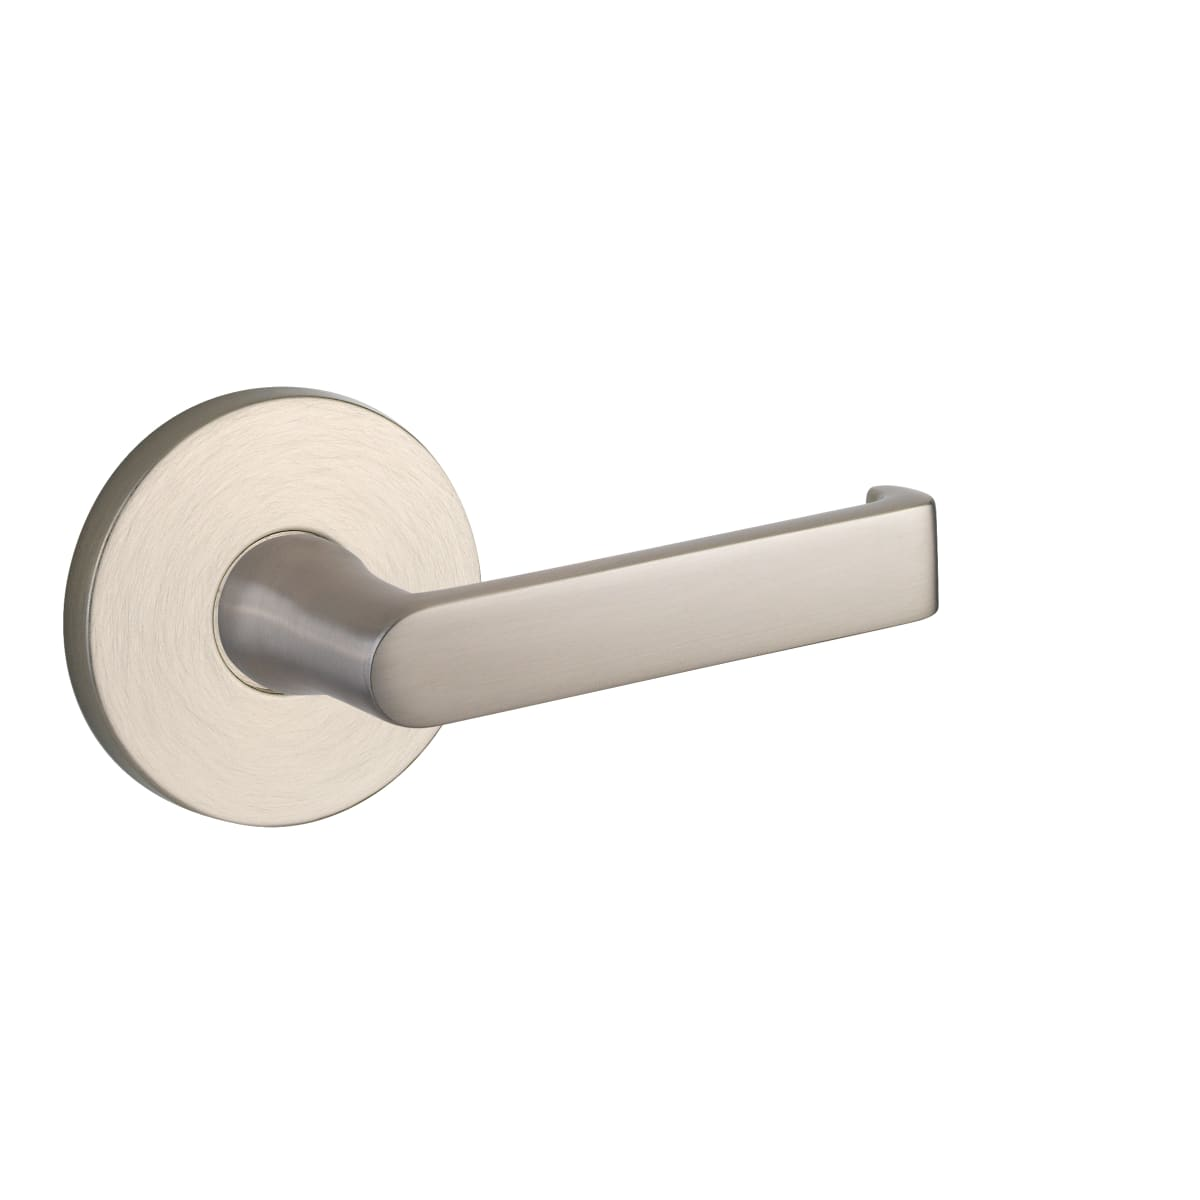 Baldwin 5105 Left Handed Non-Turning One-Sided Dummy Door Lever with Medium Rosette from the Estate Collection